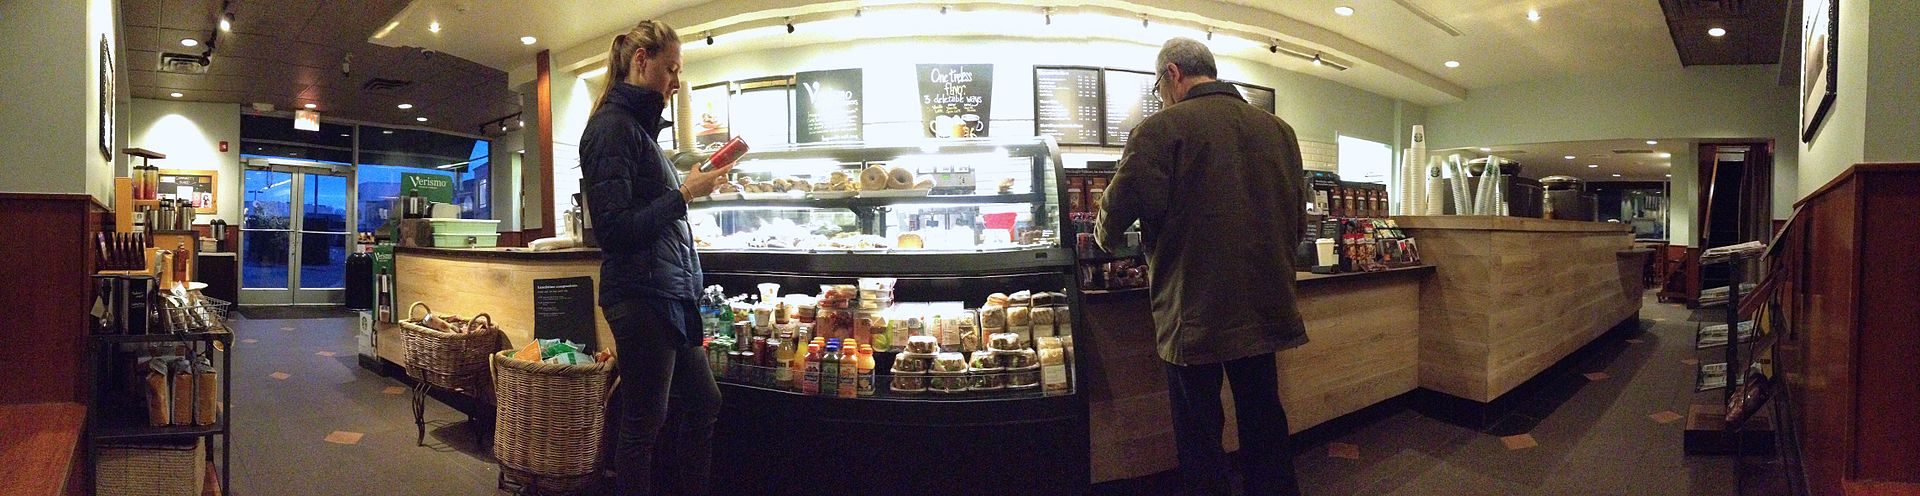 Starbucks_Westport_CT_06880_USA_-_Feb_2013